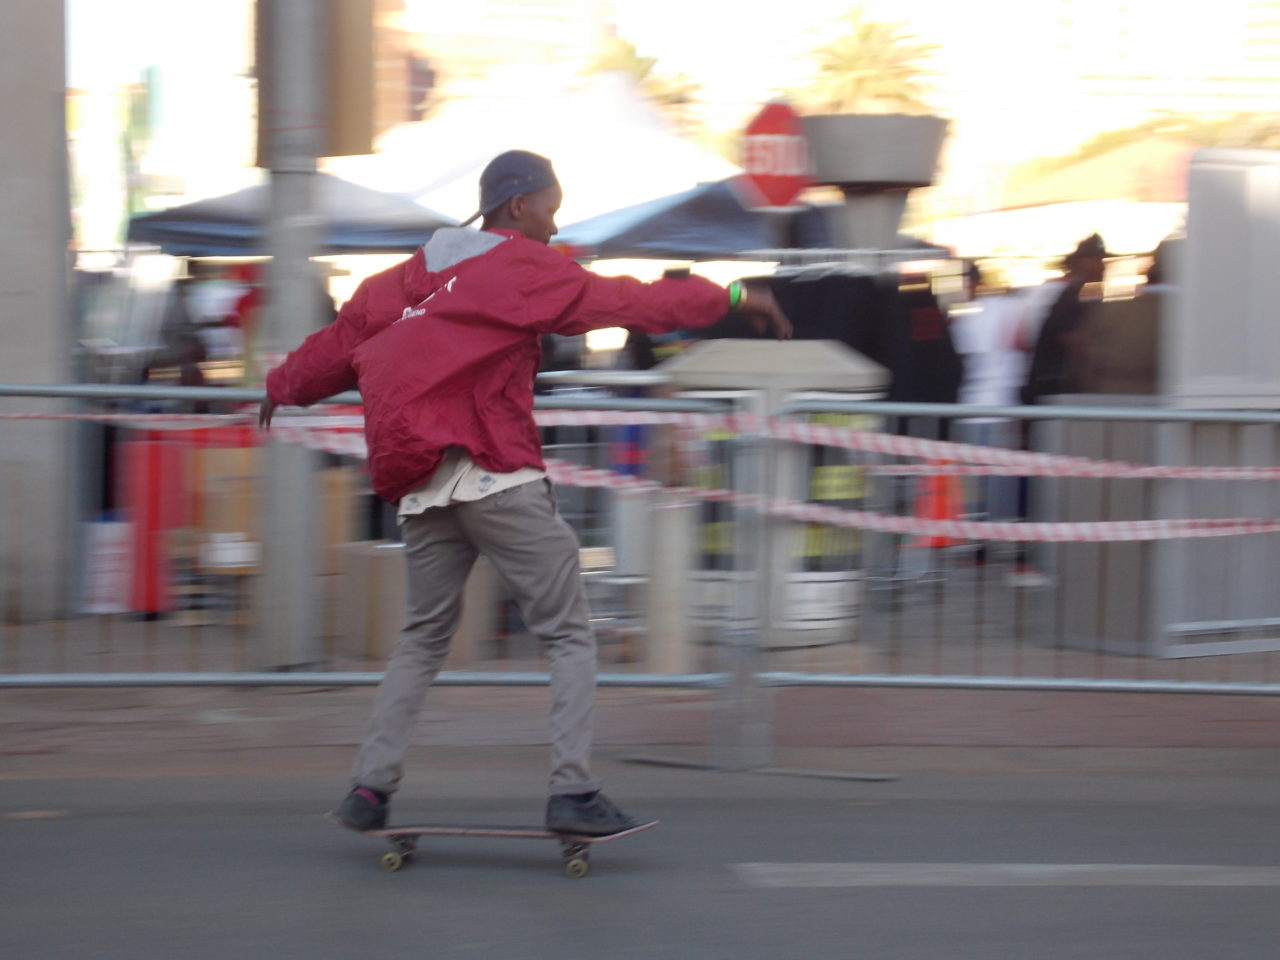 A skater at Back To The City. Photo by Bonginkosi Ntiwane